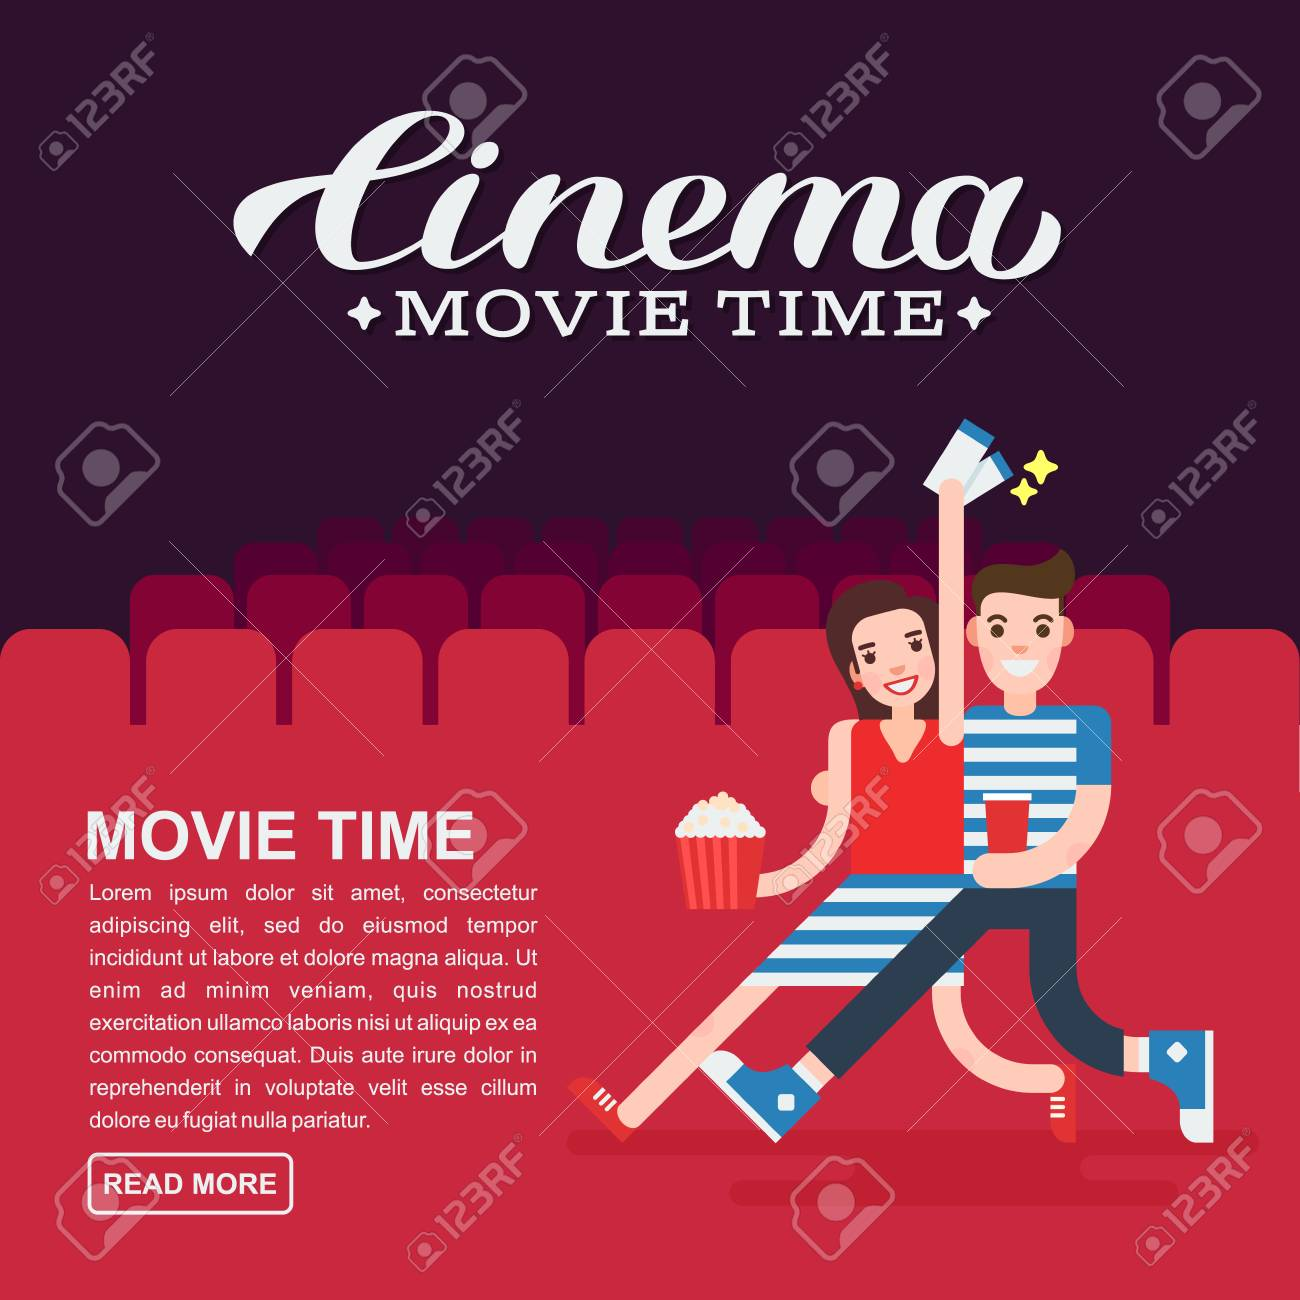 Cinema Poster Or Movie Banner Template Lettering Writing Couple People With A Popcorn